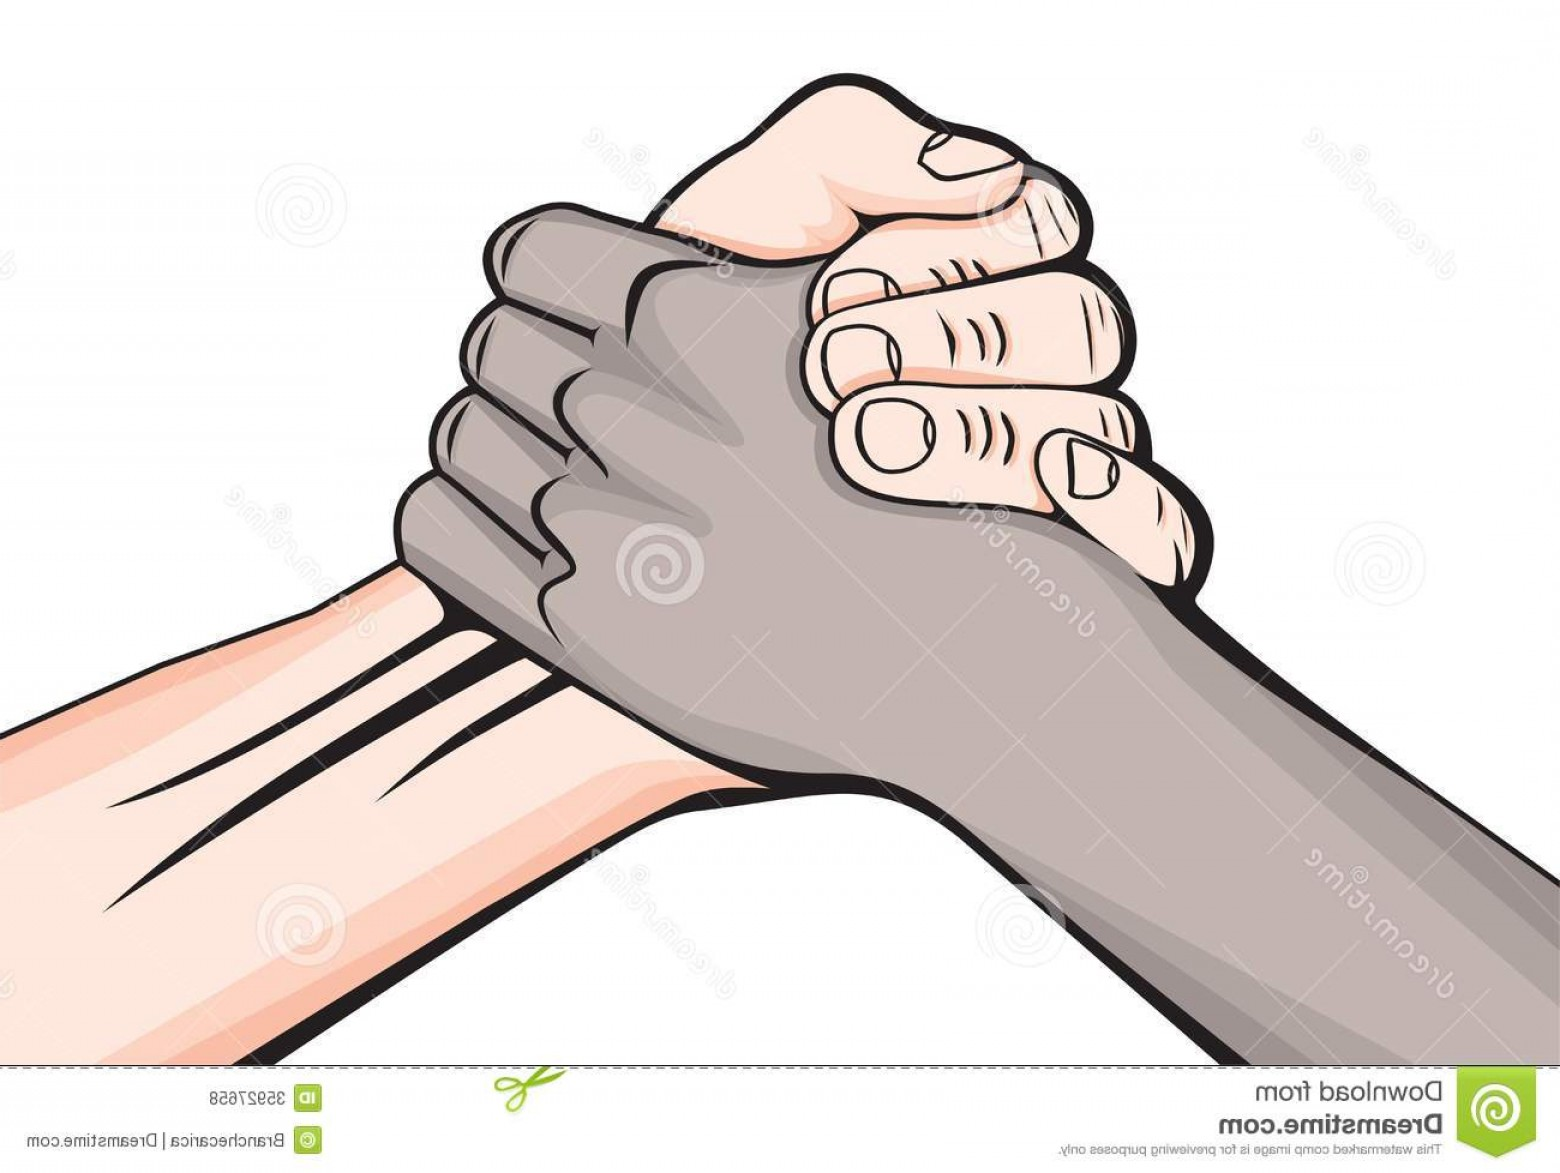 Handshake Clip Art Vector: Royalty Free Stock Photos Handshake Two Male Hands Vector Illustration Image